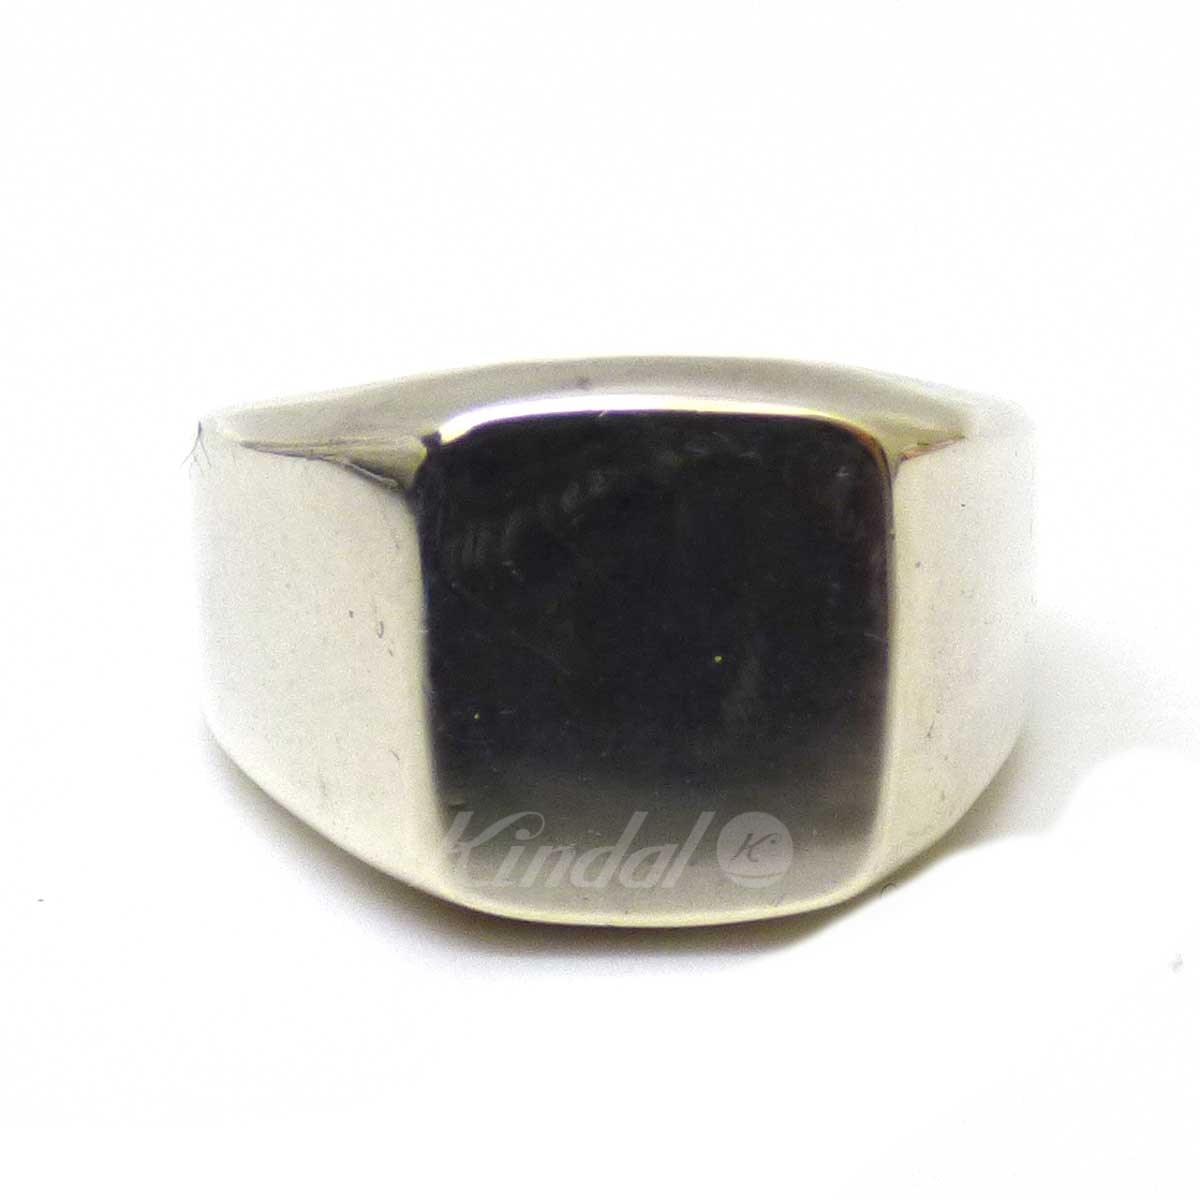 【中古】Rags McGREGOR RINKY RING SILVER925 endコラボ指輪 【送料無料】 【184521】 【KIND1641】